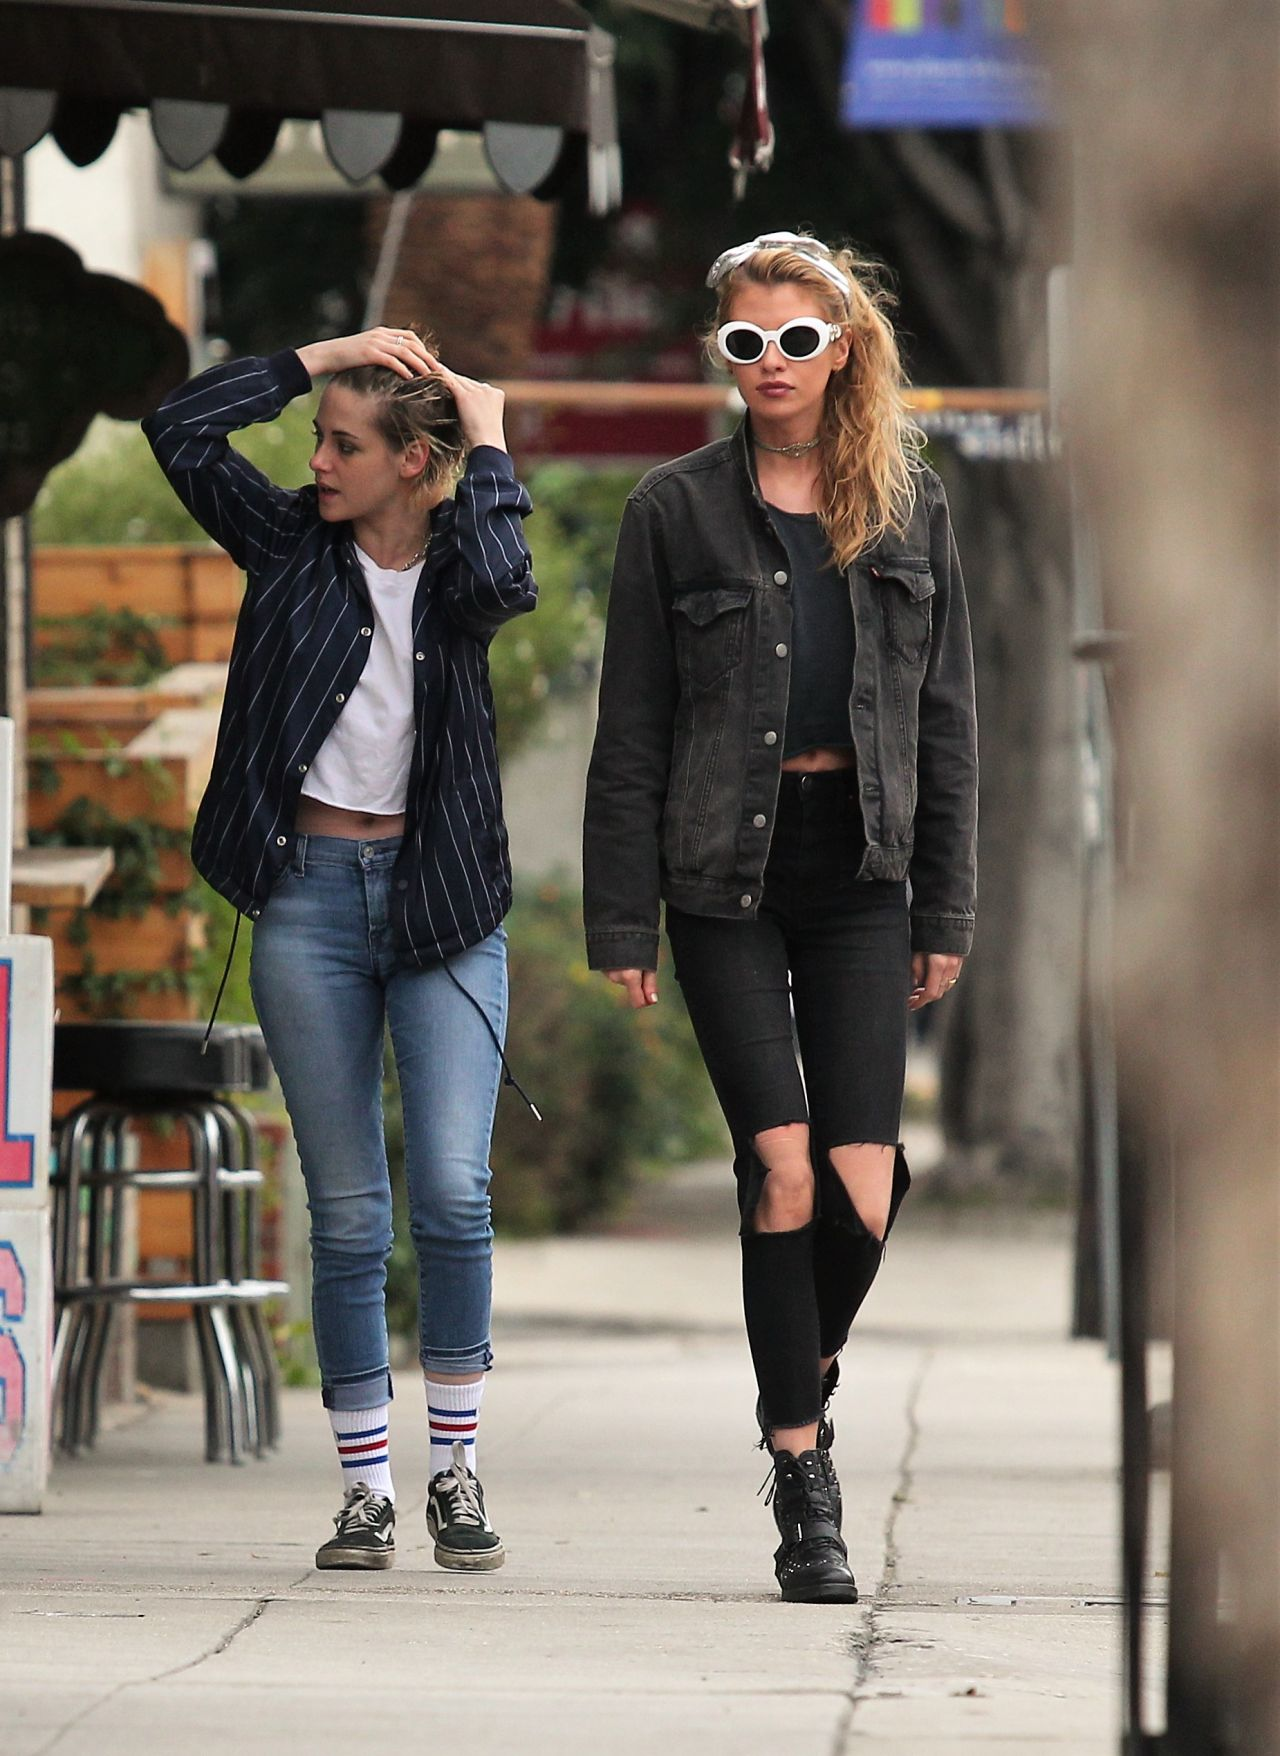 Fashion Nail Salon Kristen Stewart And Stella Maxwell Out In Los Angeles